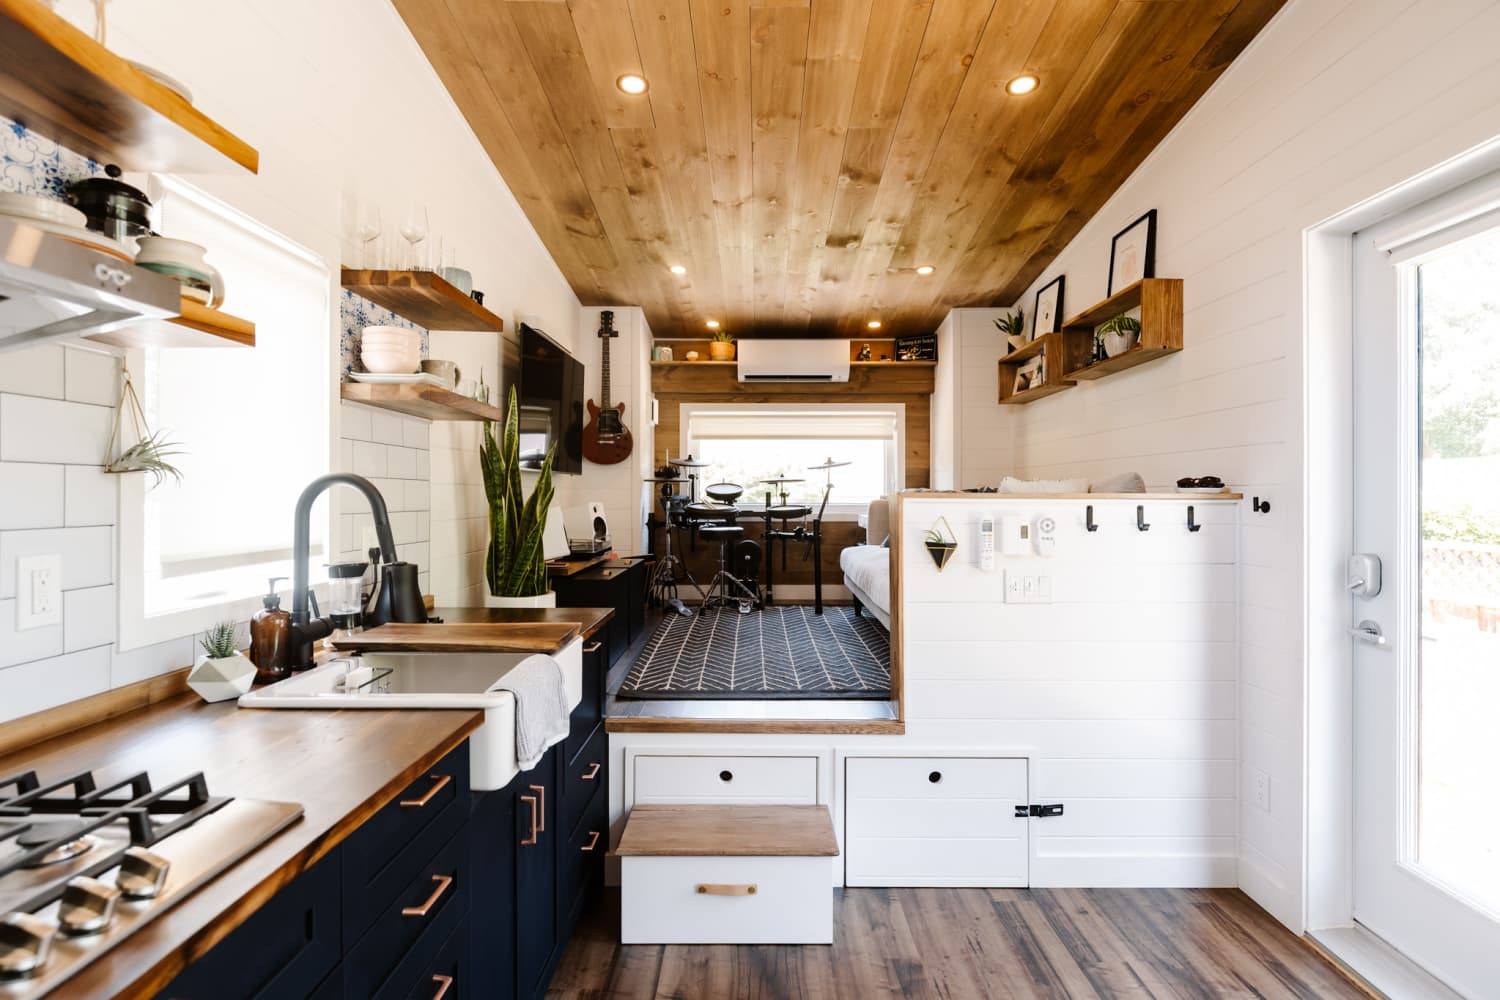 This 331-Square-Foot Tiny House Fits More Things Than We Can List in a Headline